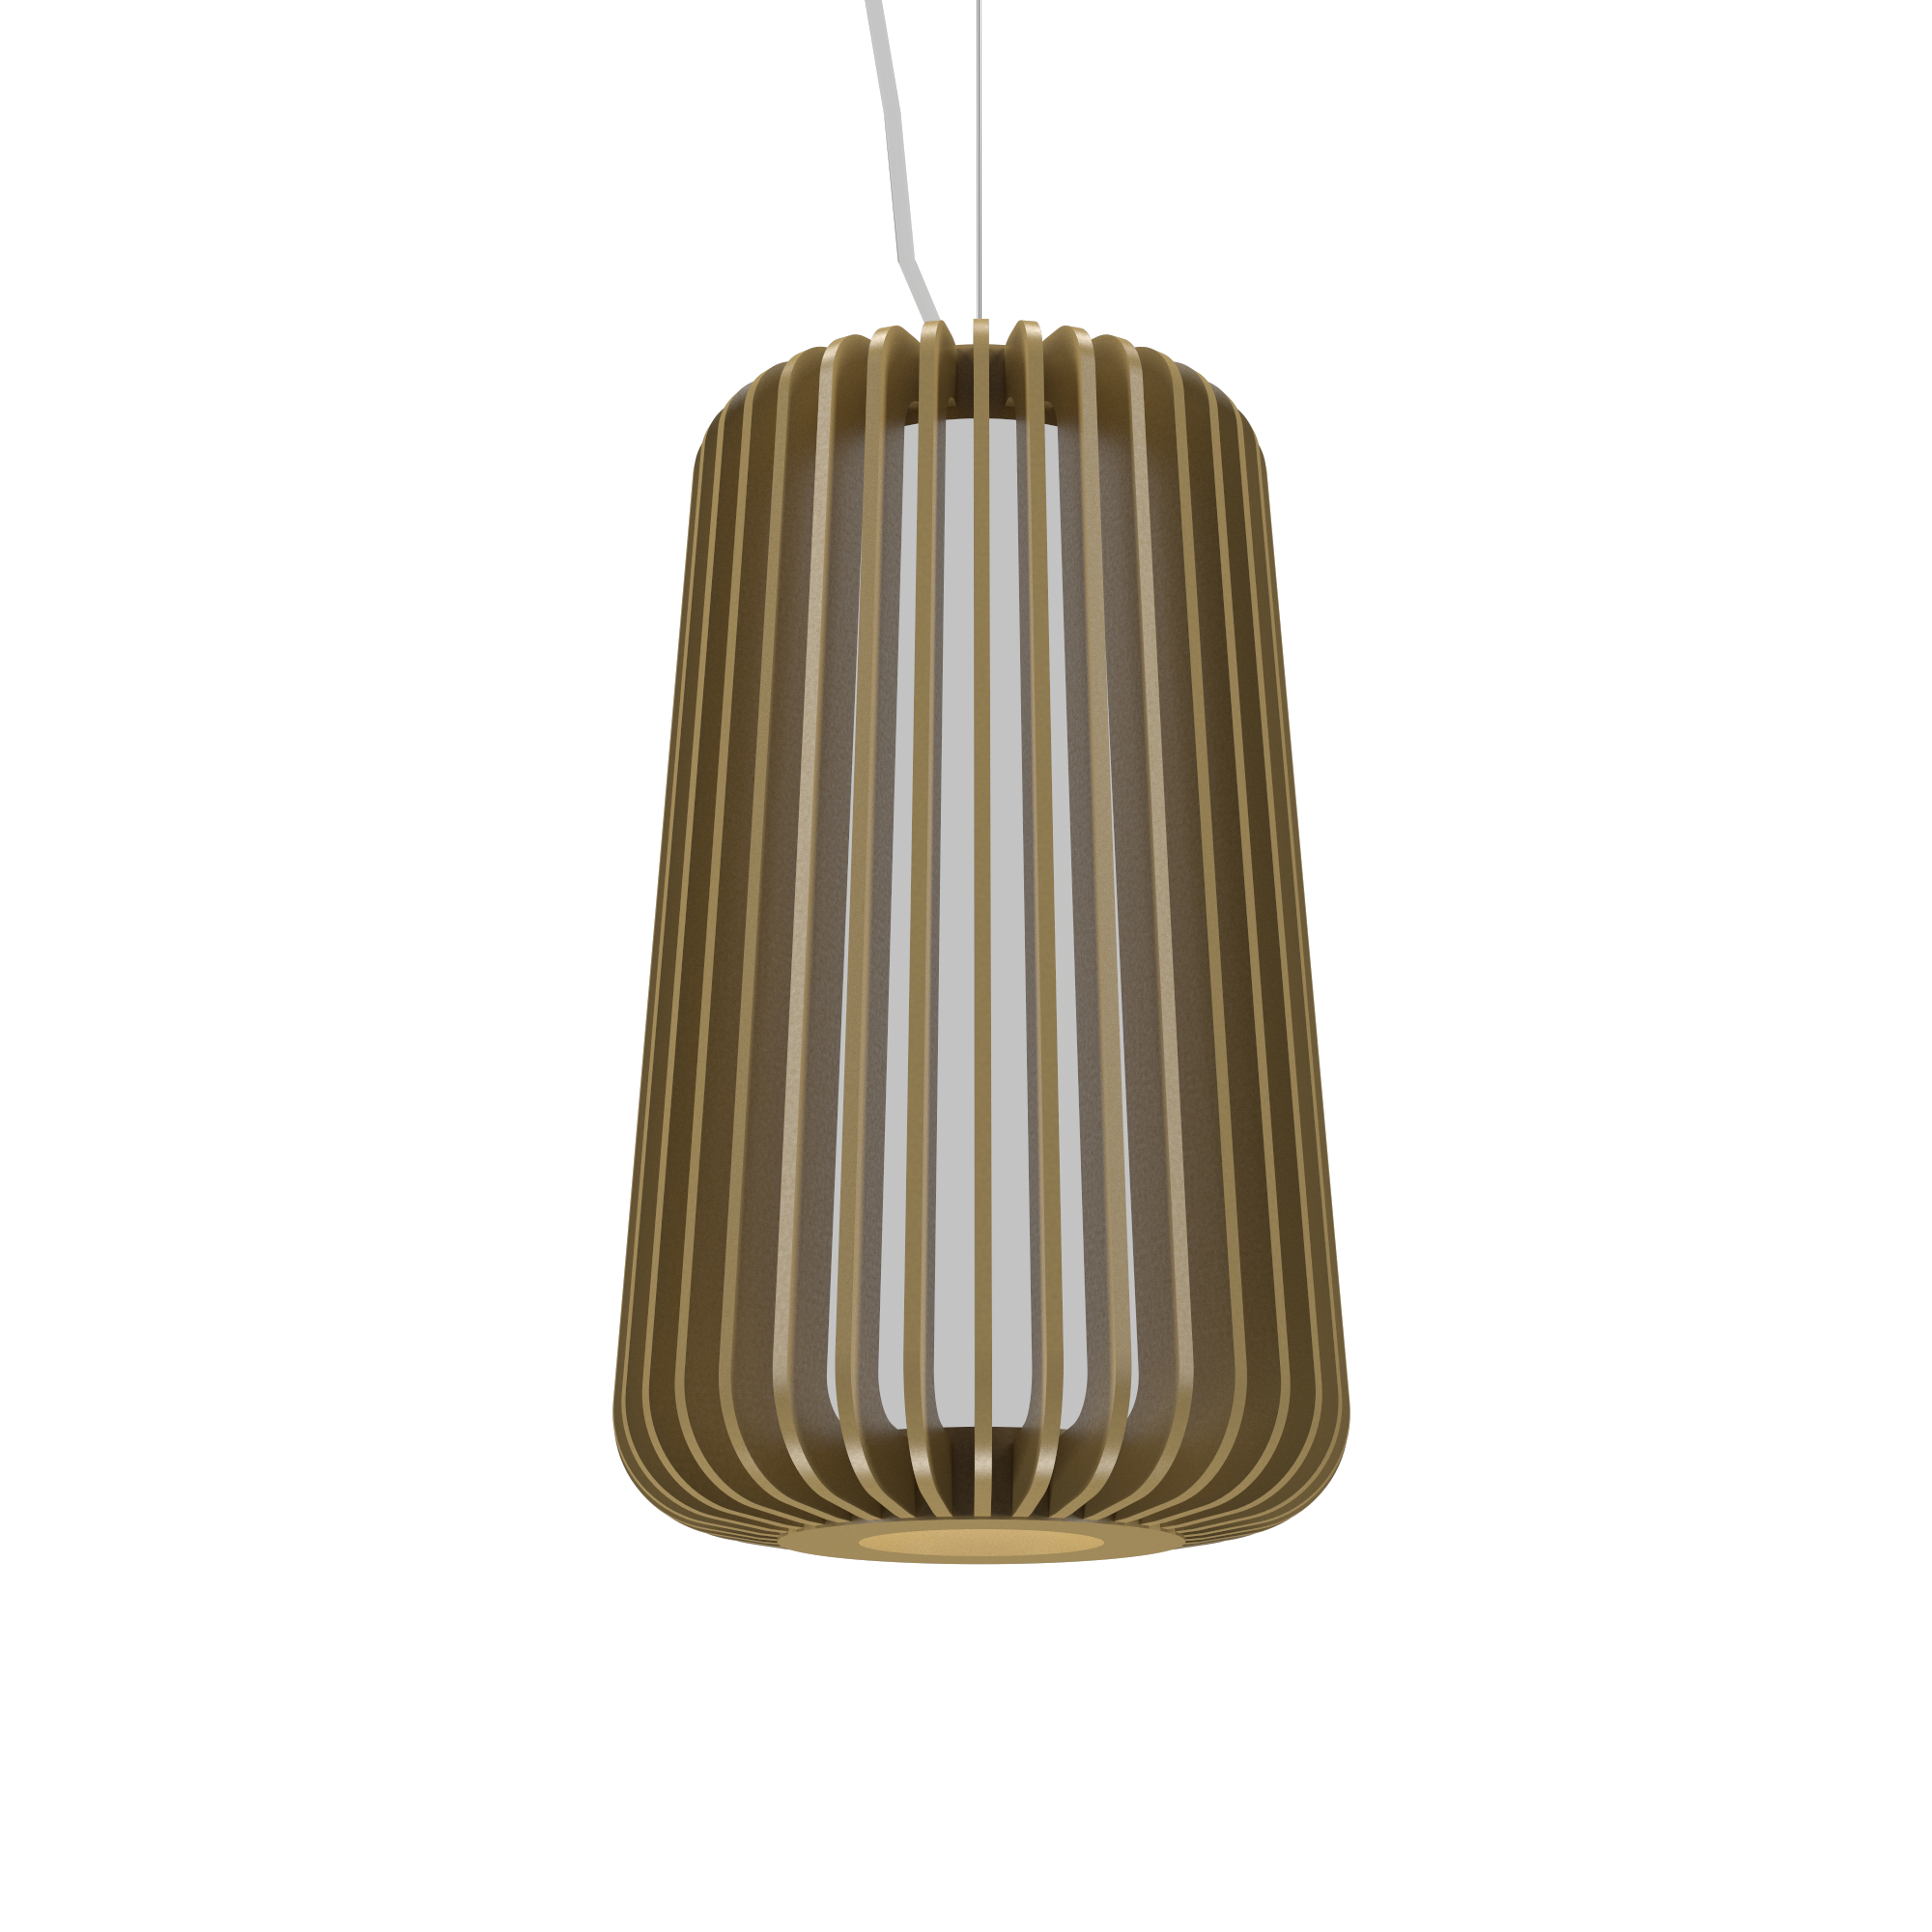 Pendant Lamp Accord Stecche Di Legno 1427 - Stecche Di Legno Line Accord Lighting | Pale Gold